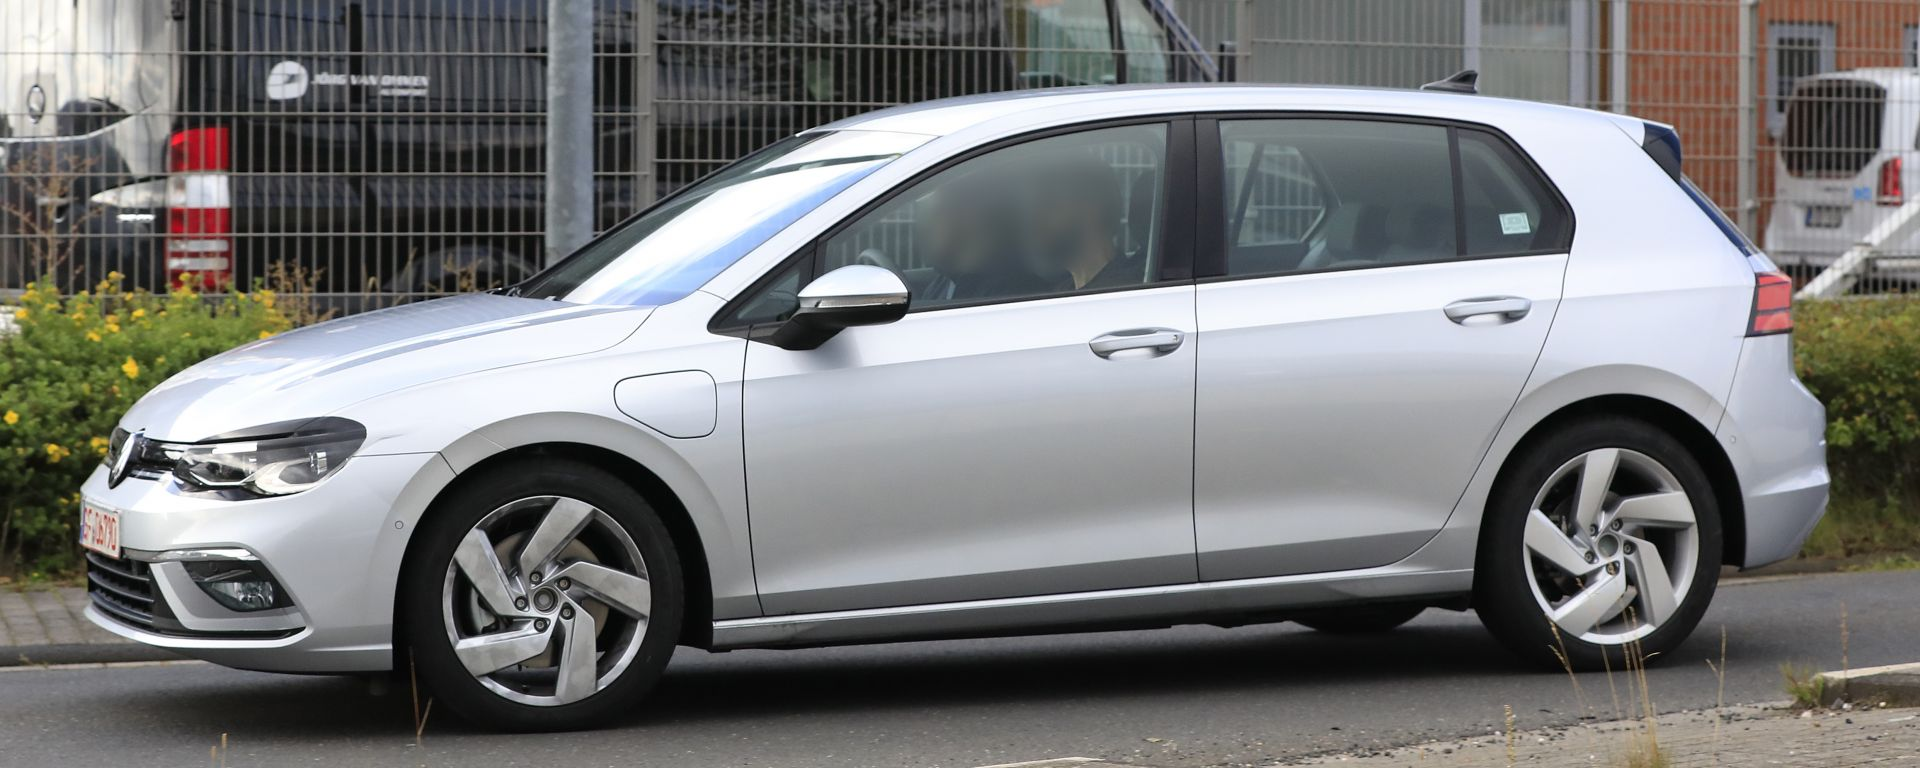 Volkswagen Golf GTE 2020: vista laterale